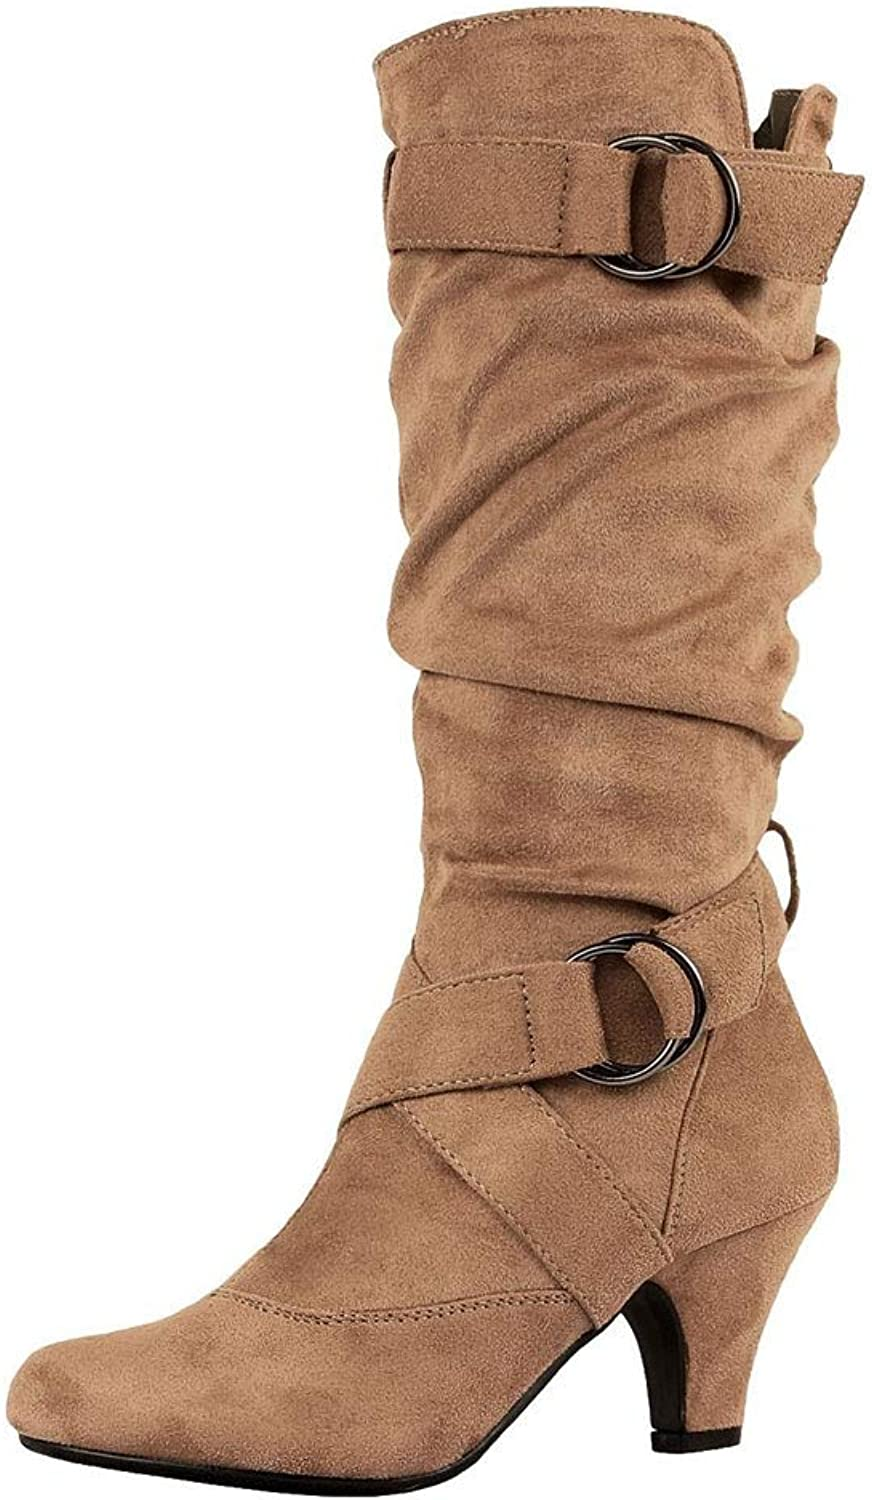 Women's High Boots, Large Size Low Heel Snow Boots Suede Cotton Round Head Knee Boots High Heel Non-Slip Mid Boots Comfortable Warm Knight Boots